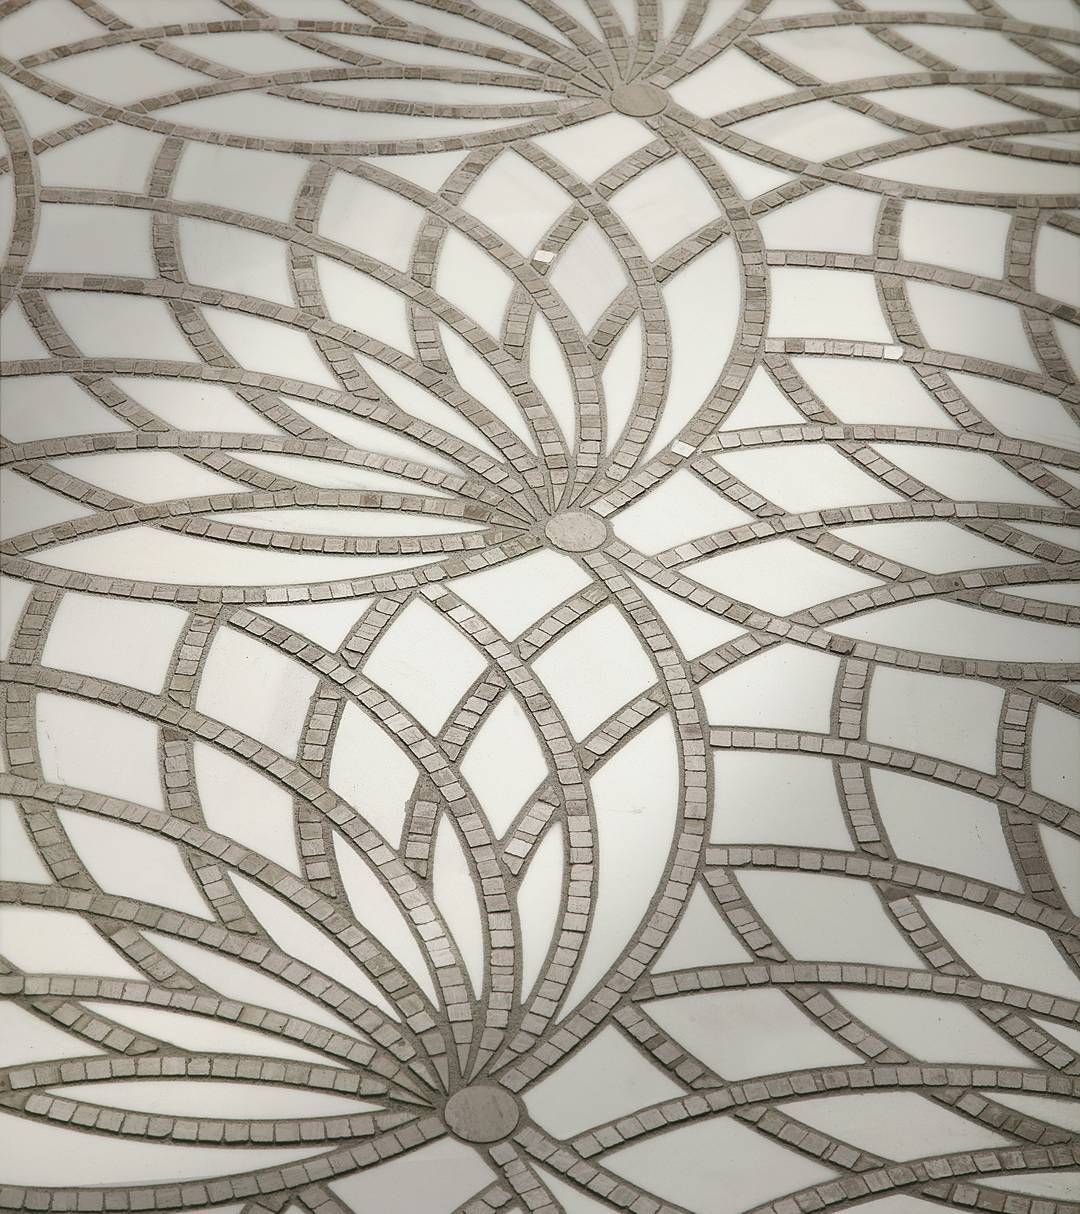 New an ancient egyptian symbol of rebirth the lotus flower is an ancient egyptian symbol of rebirth the lotus flower is drawn in tesserae mosaics across a smooth background of waterjet cut marble melding old world izmirmasajfo